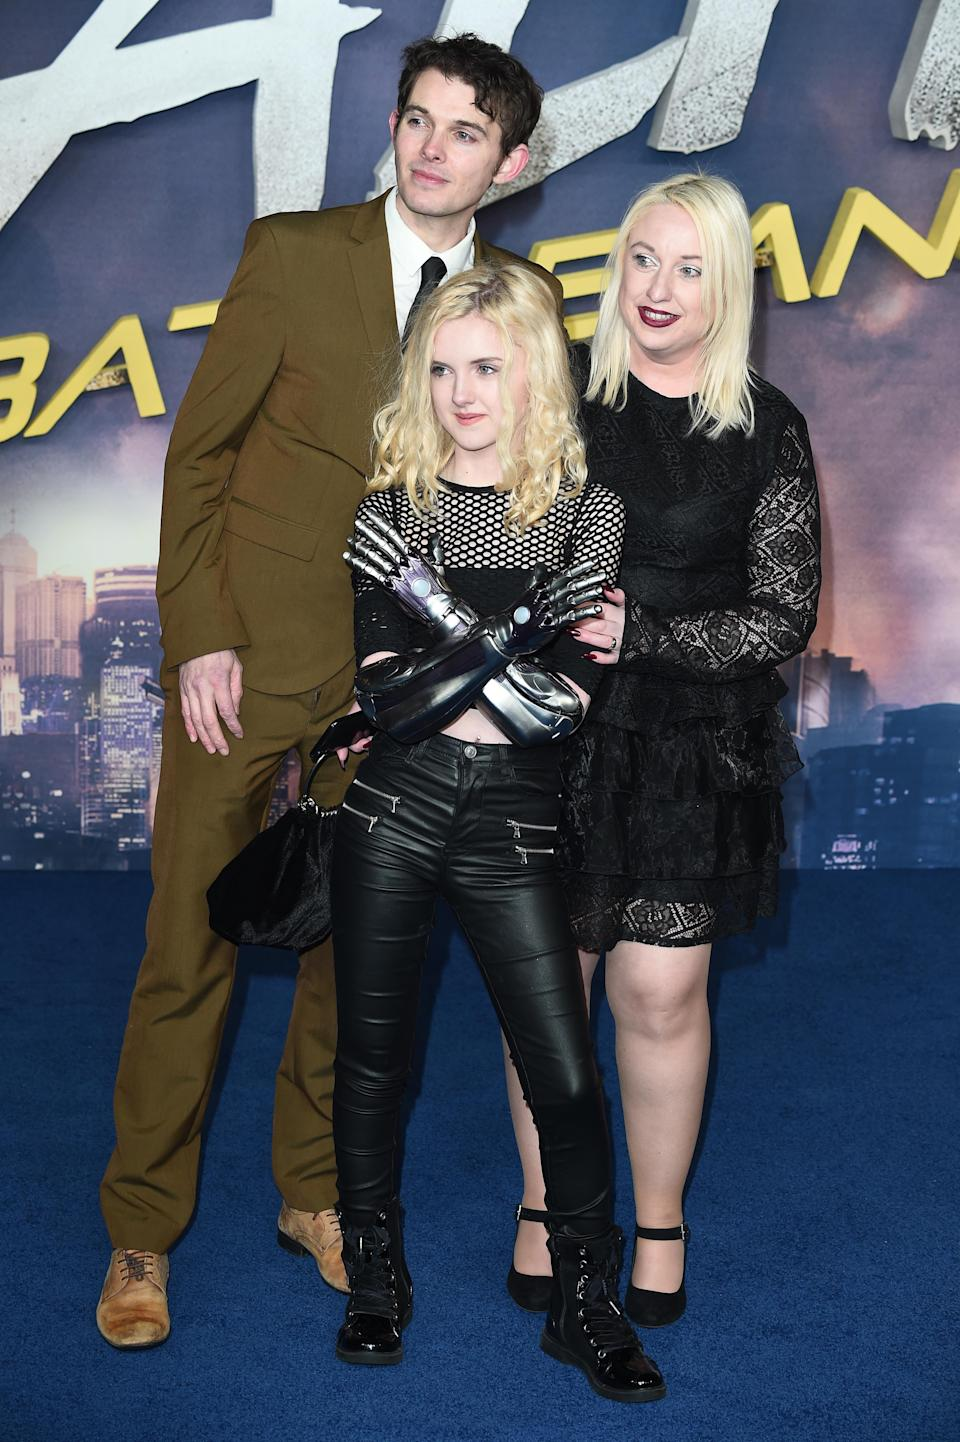 Tilly with her new bionic arms at the U.K. premiere of <em>Alita: Battle Angel</em>. (Photo: Getty)